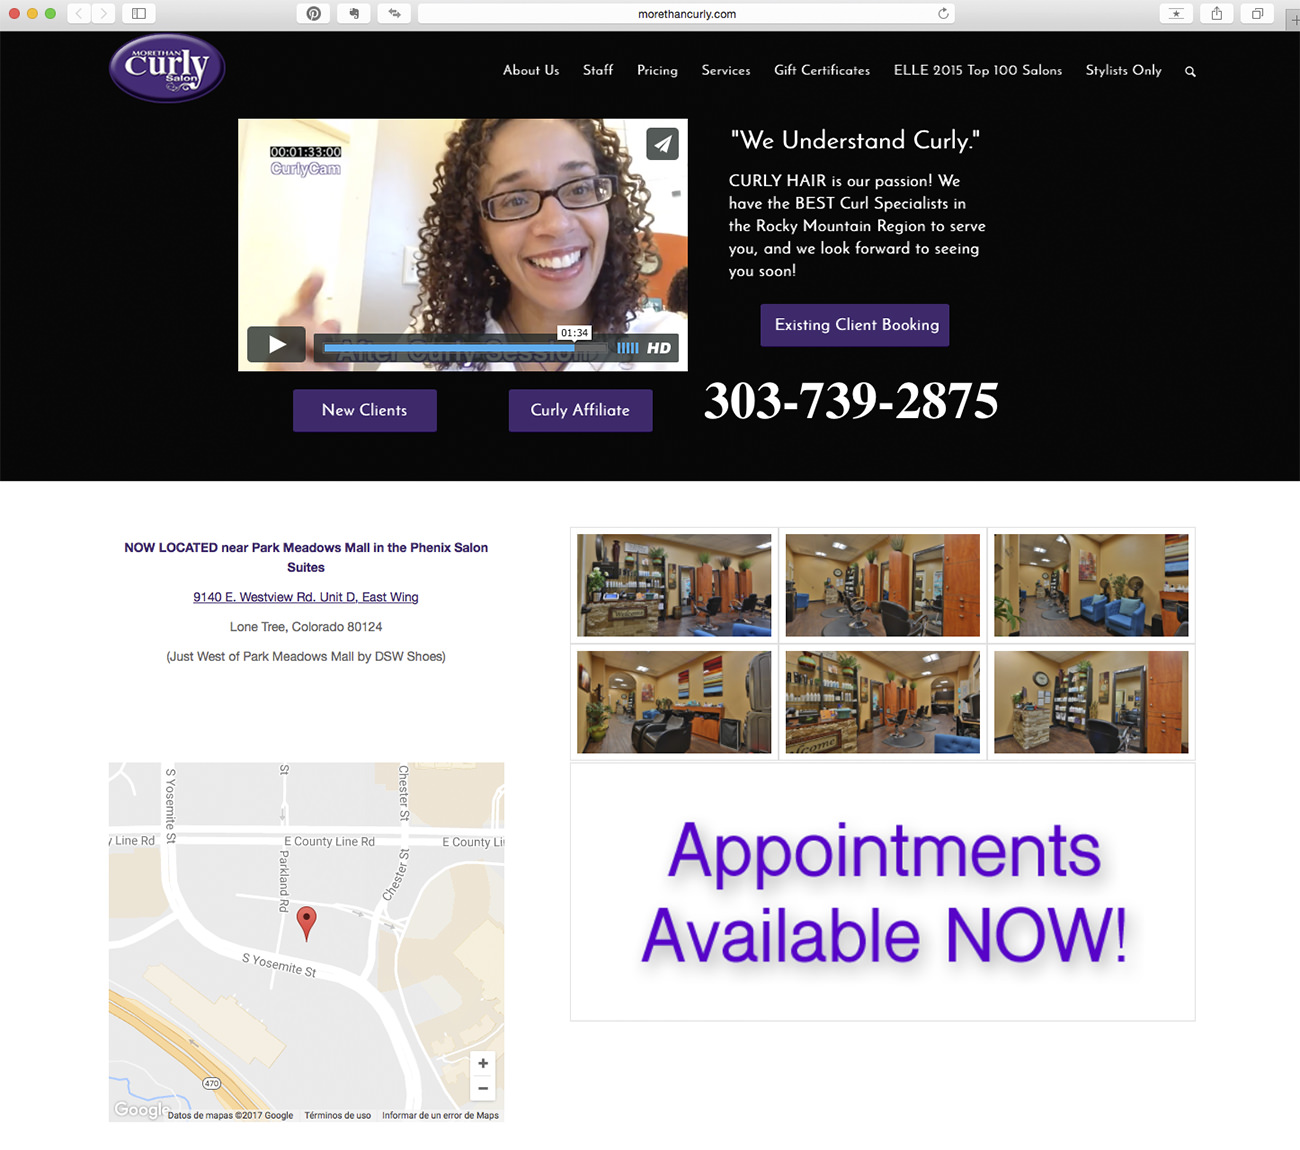 Marketing ideas for hair salons. More than Curly example.